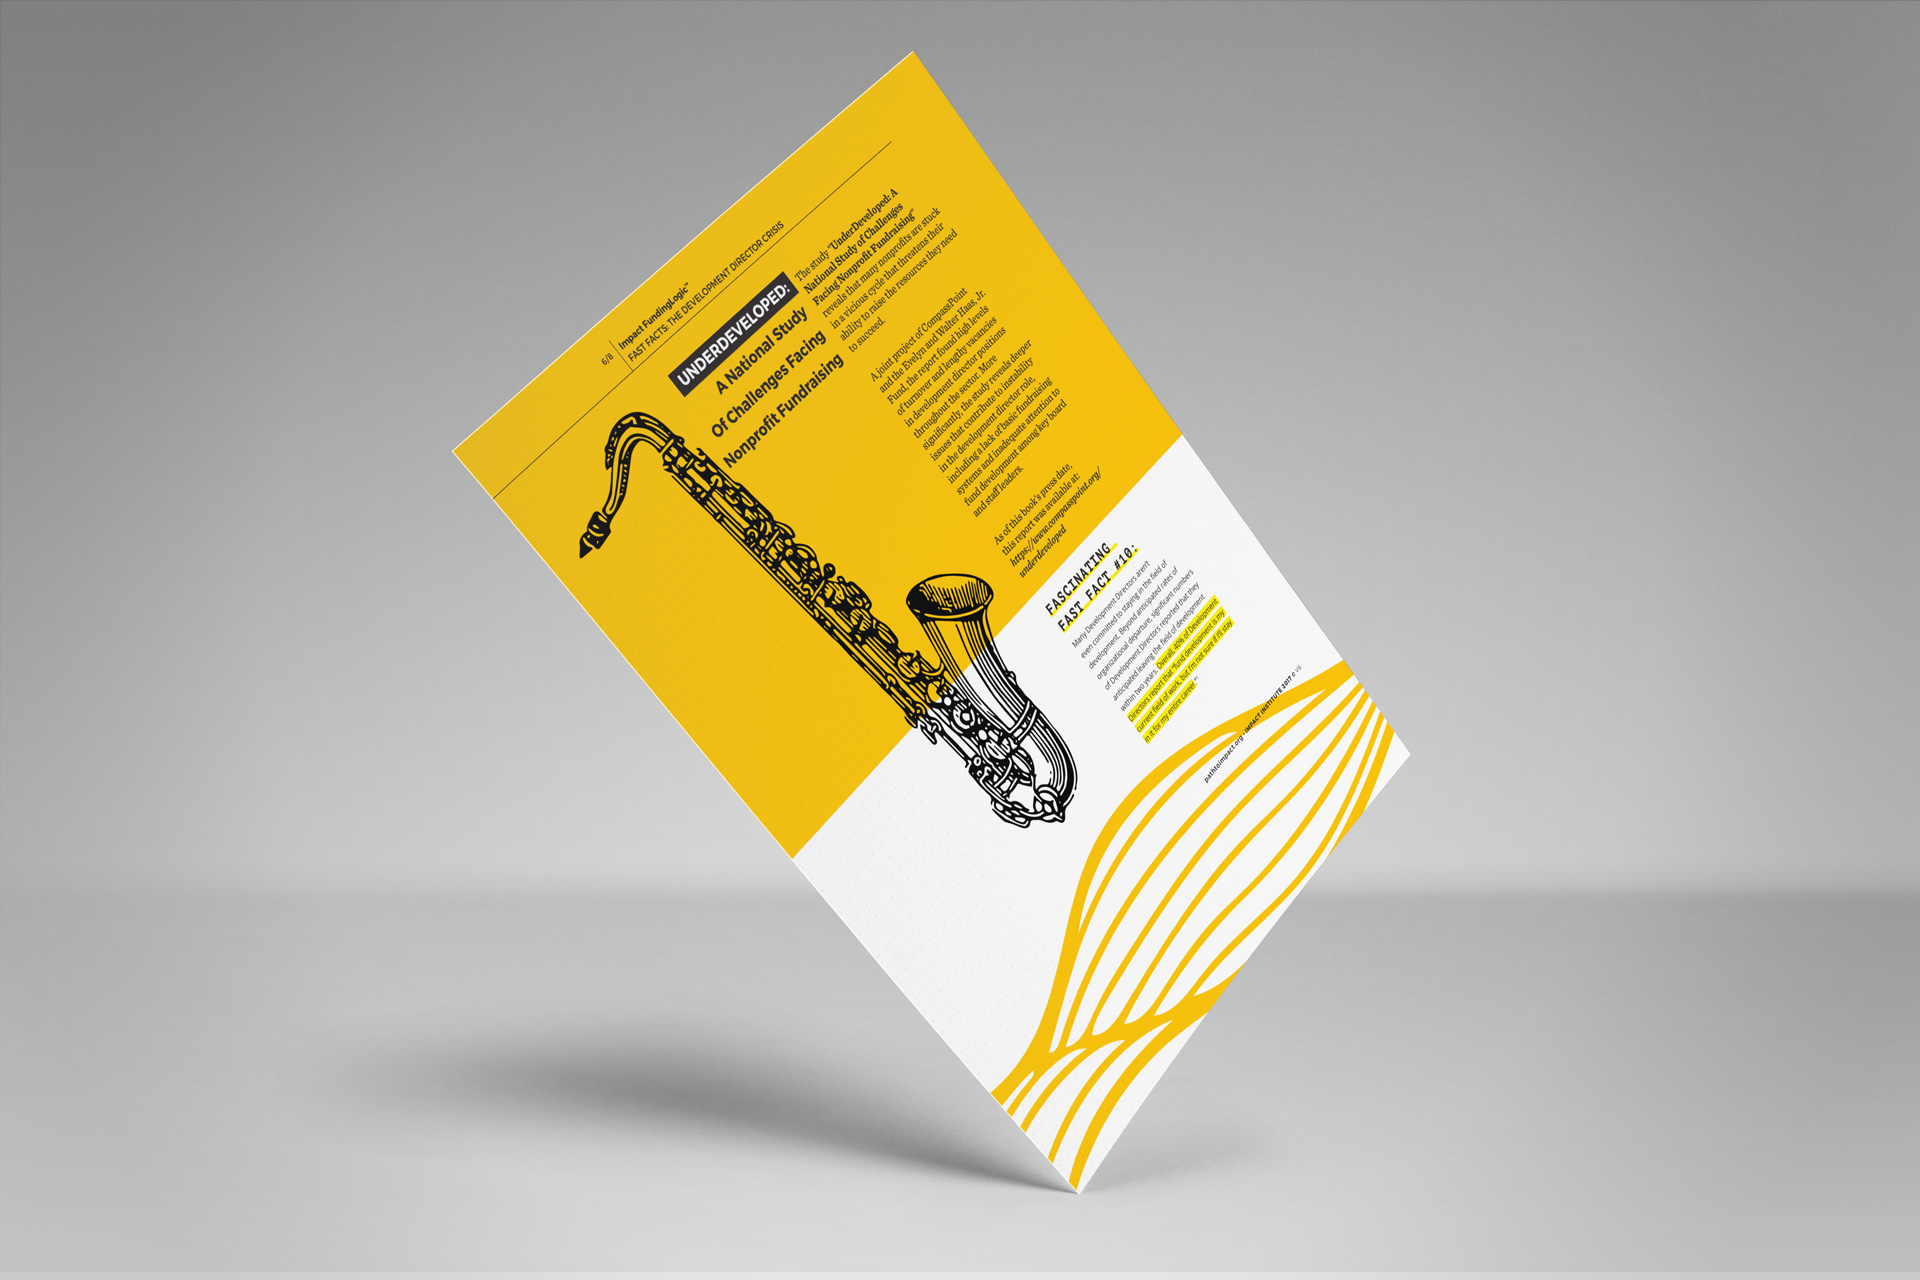 Mockup of a single page of a printed article with yellow accents and a black, hand-drawn saxophone on it